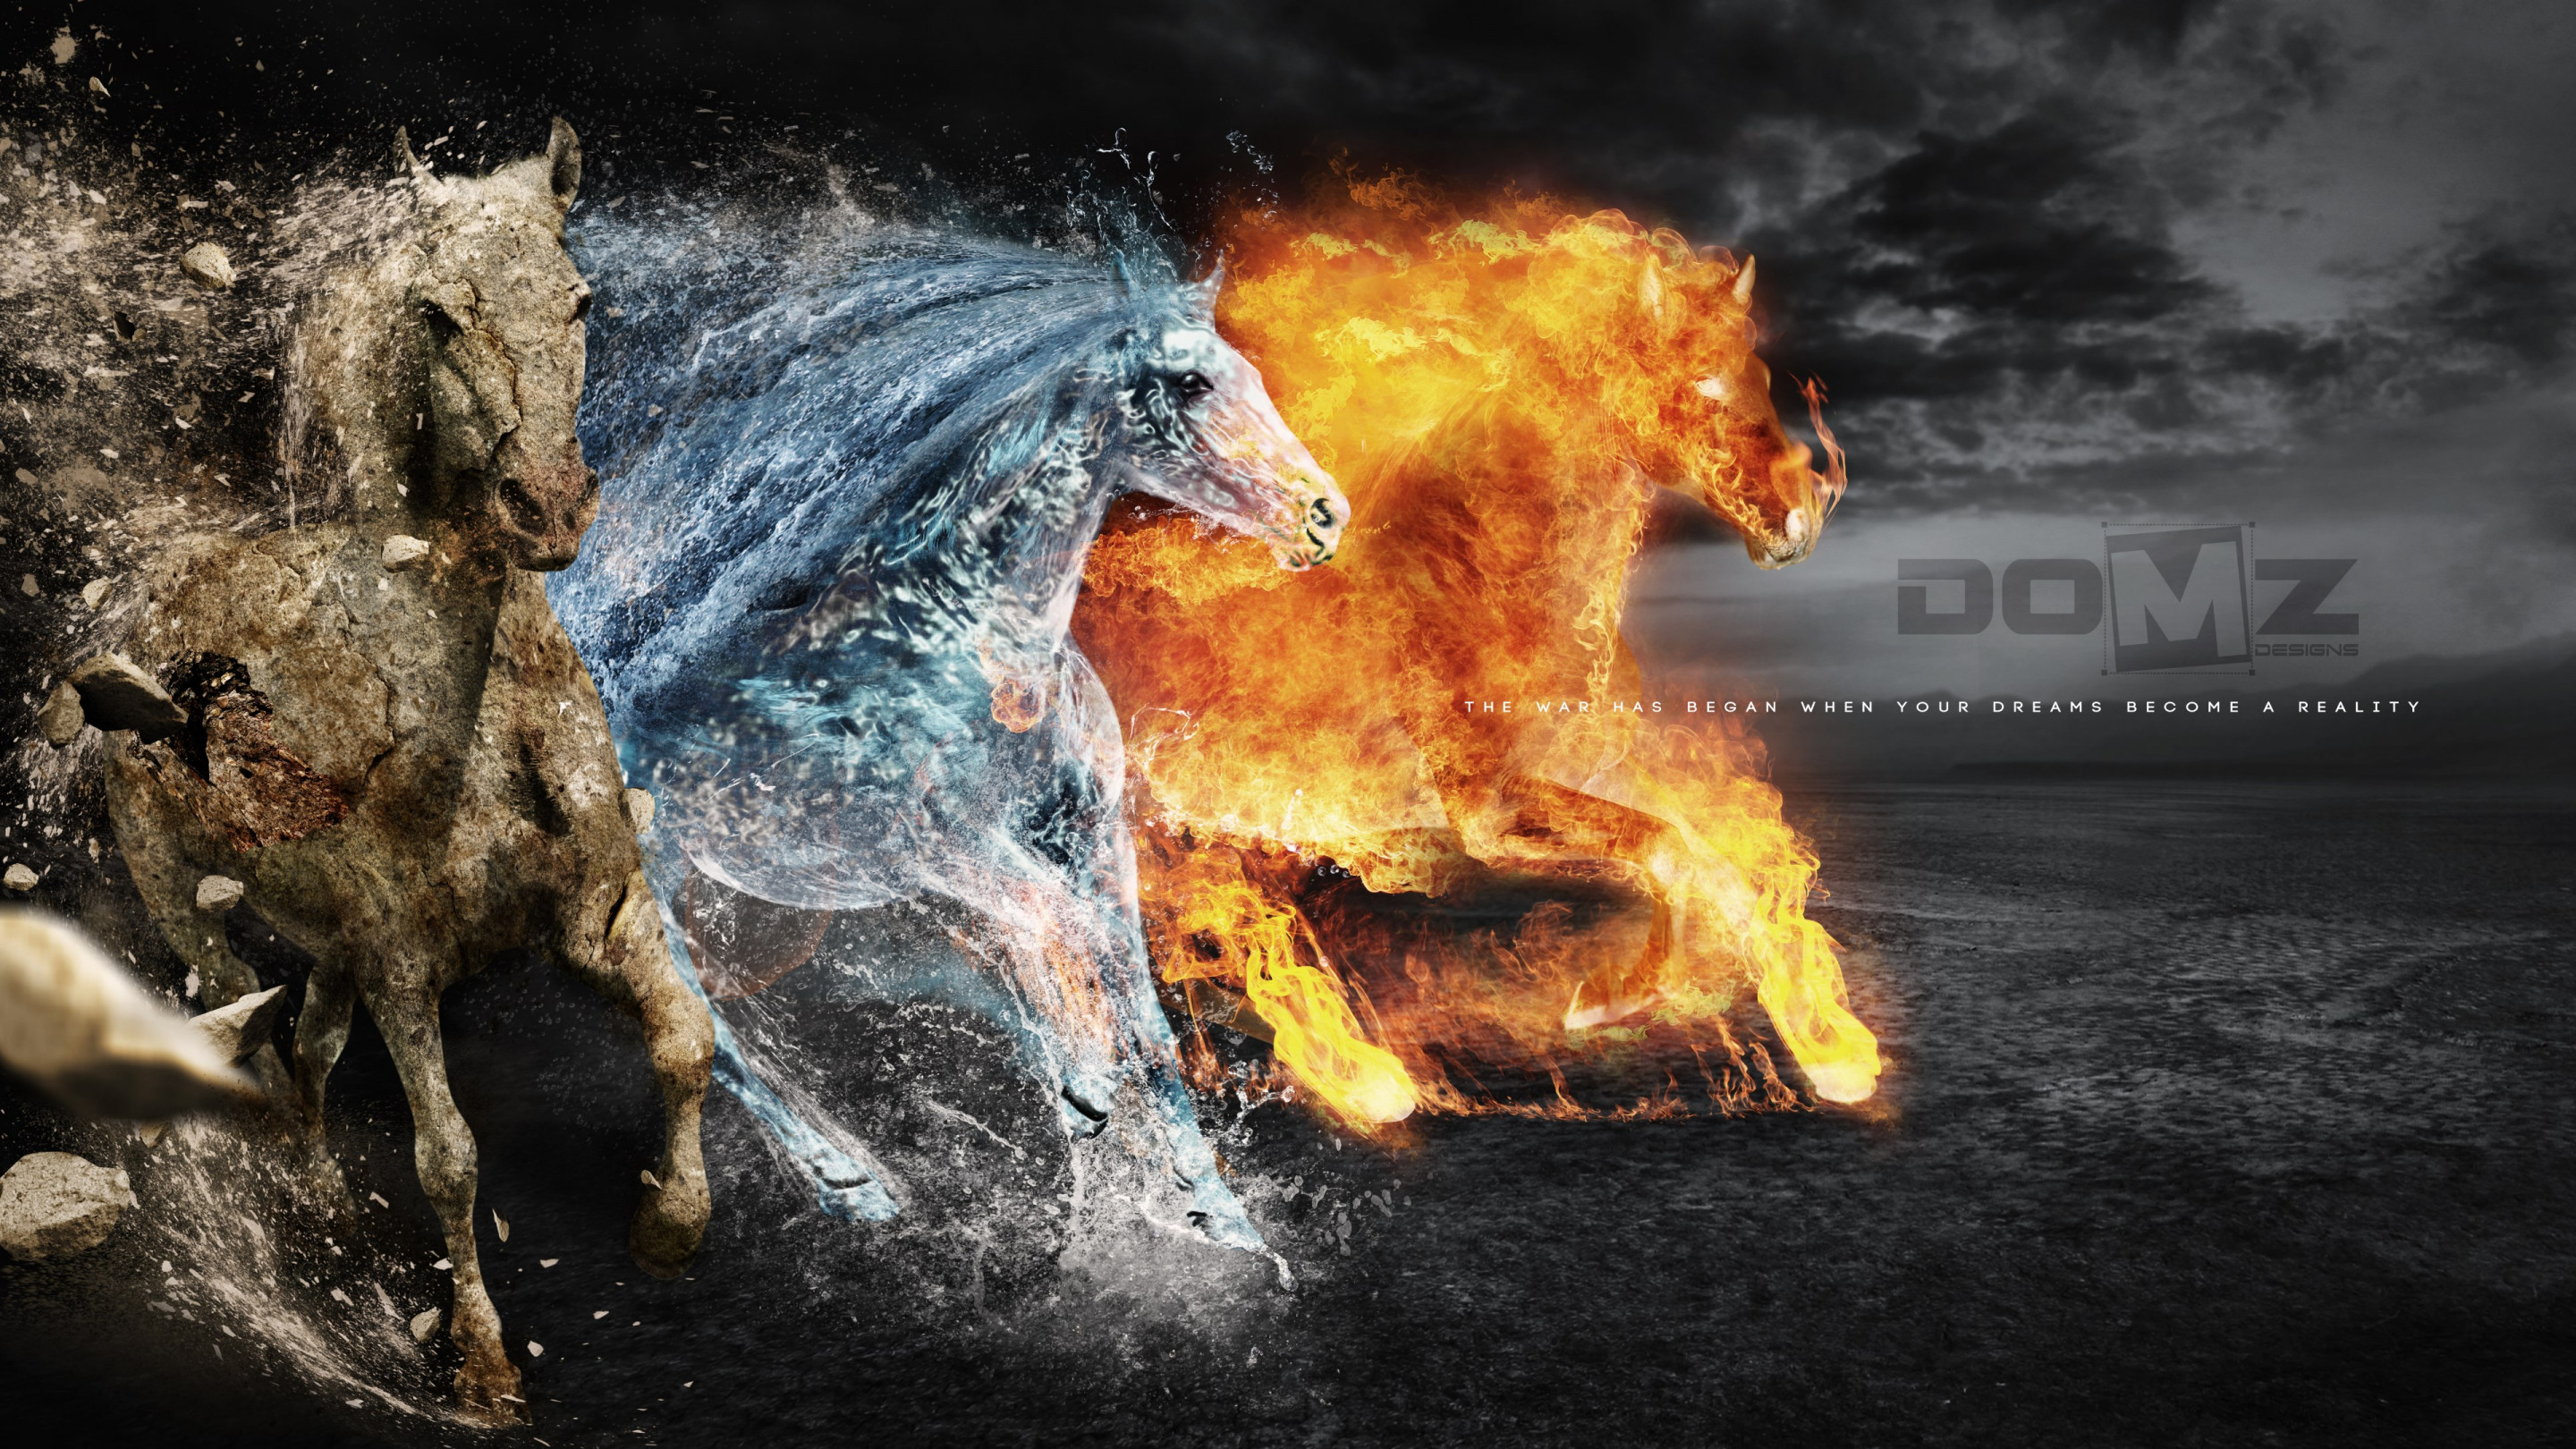 Horses of: Earth, Fire and Water wallpaper 2880x1620